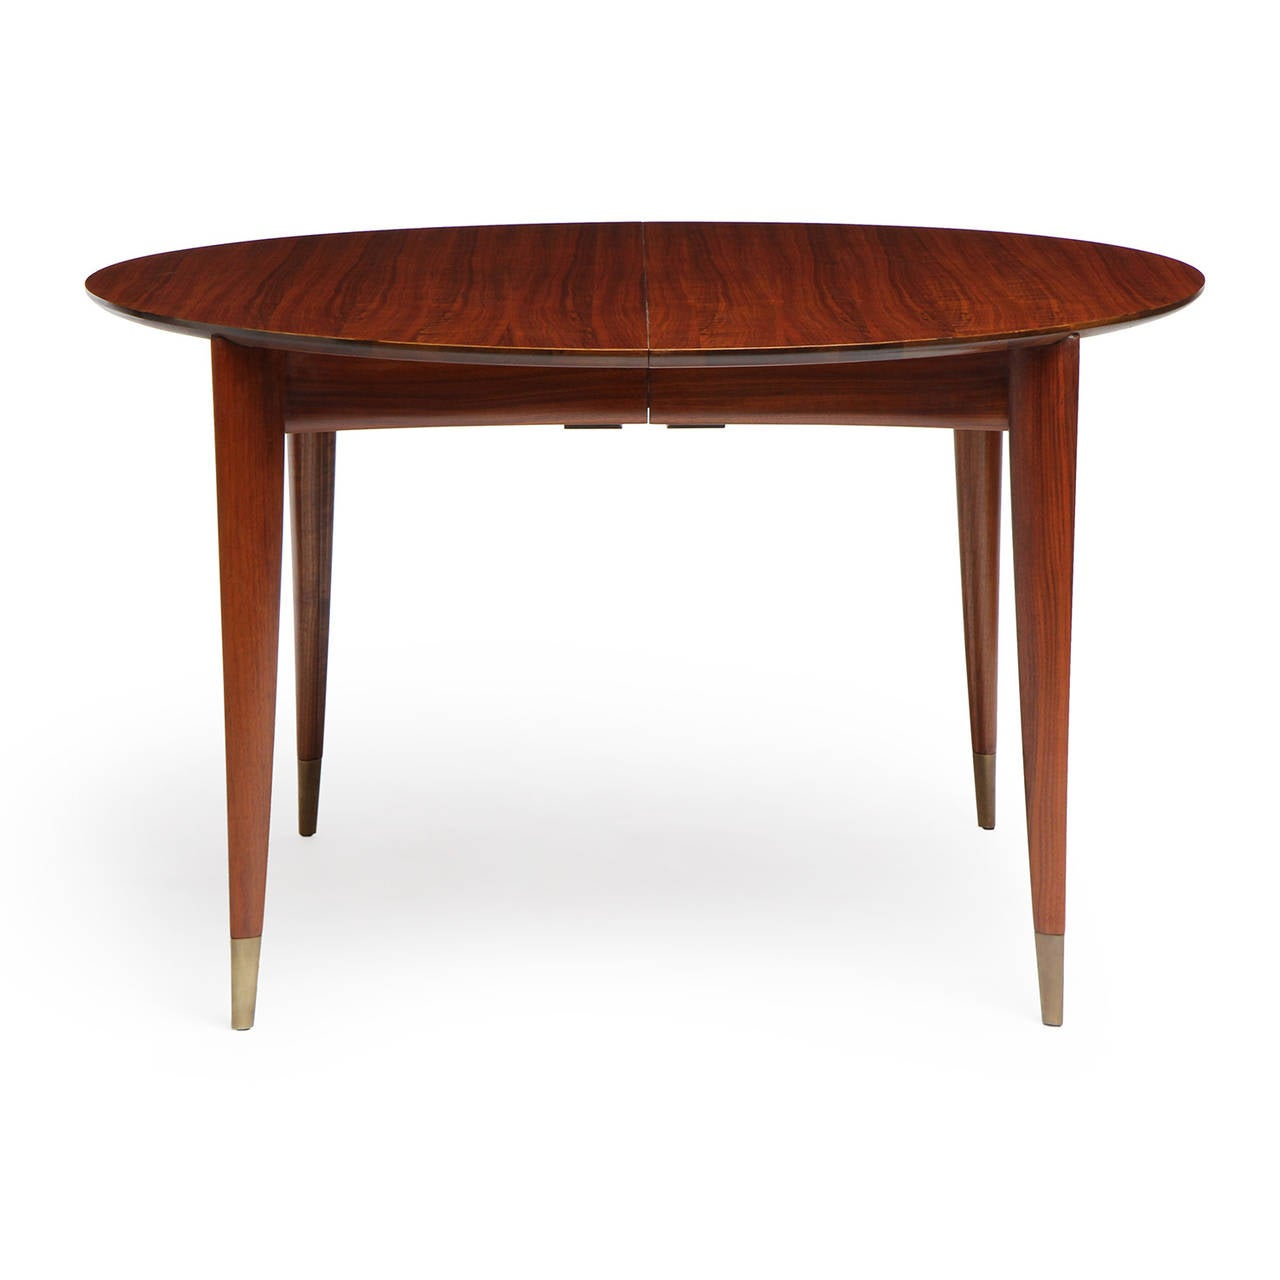 Expandable Dining Table by Gio Ponti For Sale at 1stdibs : 10753l from www.1stdibs.com size 1280 x 1280 jpeg 56kB